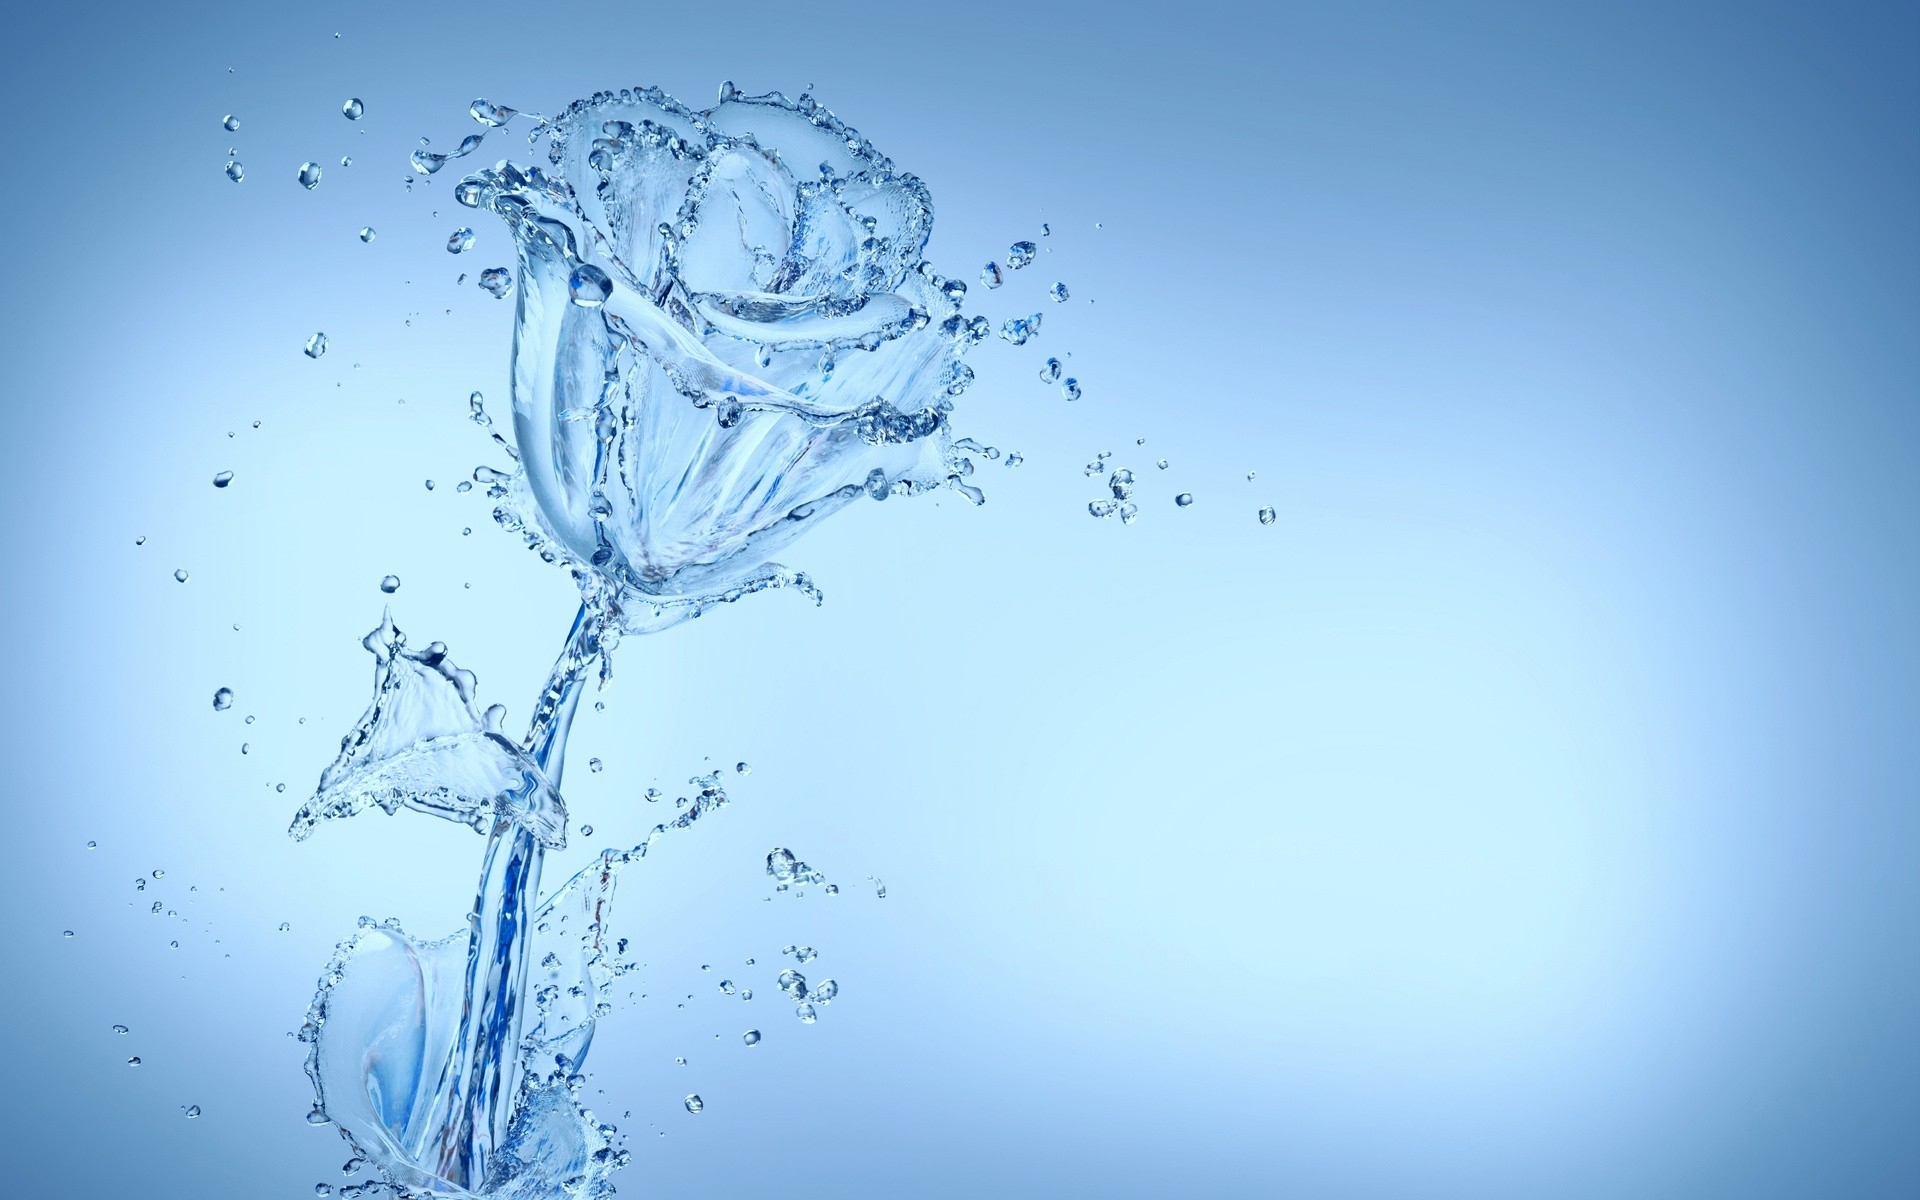 Cool Water Flower Wallpaper 37544 1920x1200 px 1920x1200